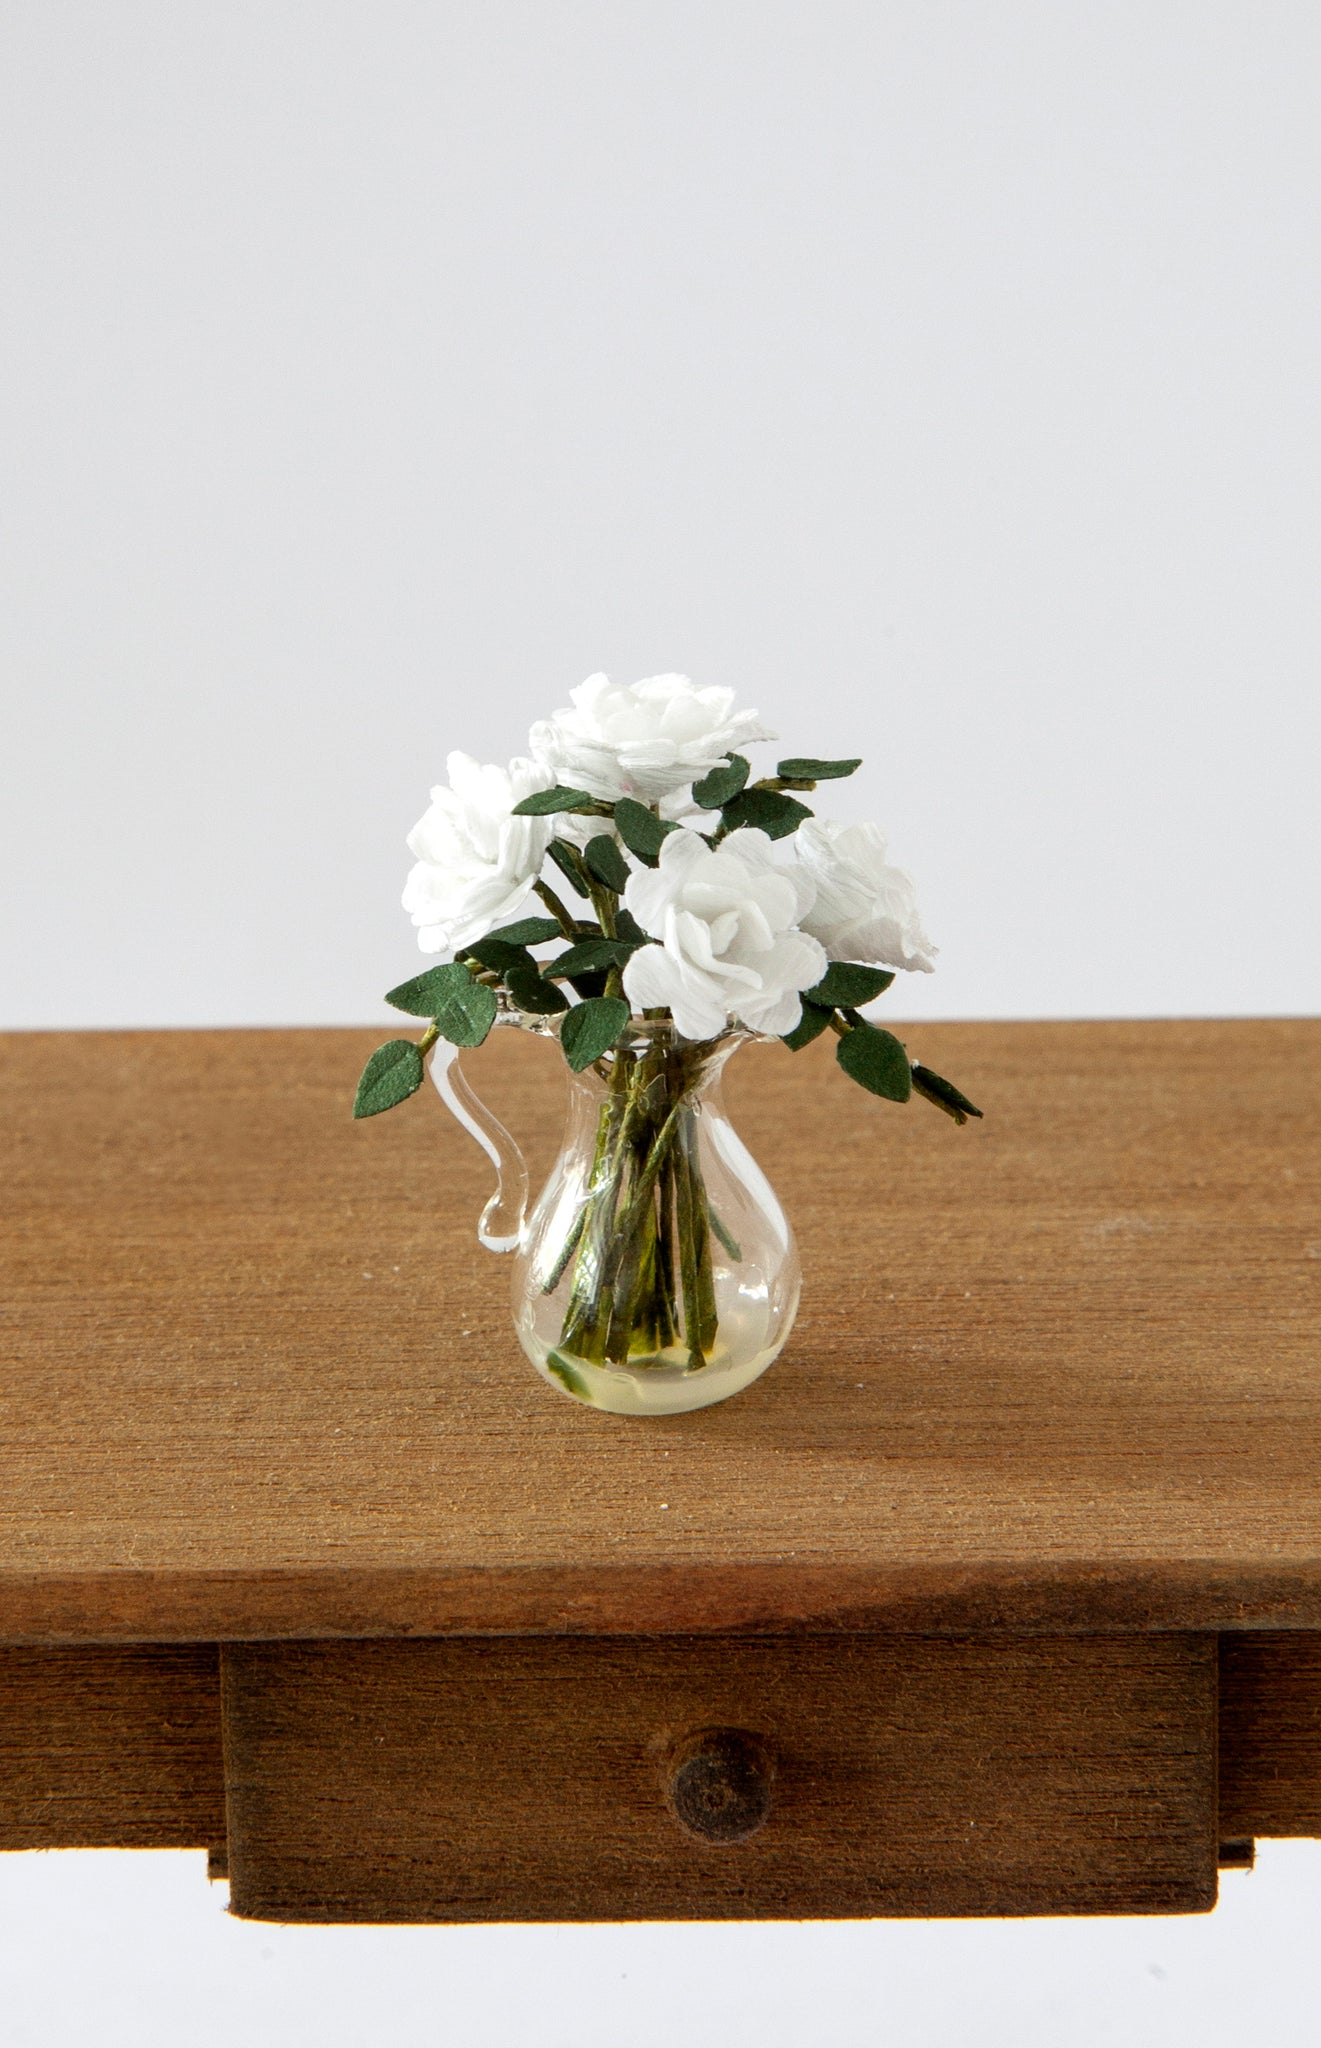 12th Scale Artisan White Roses in a clear glass Jug